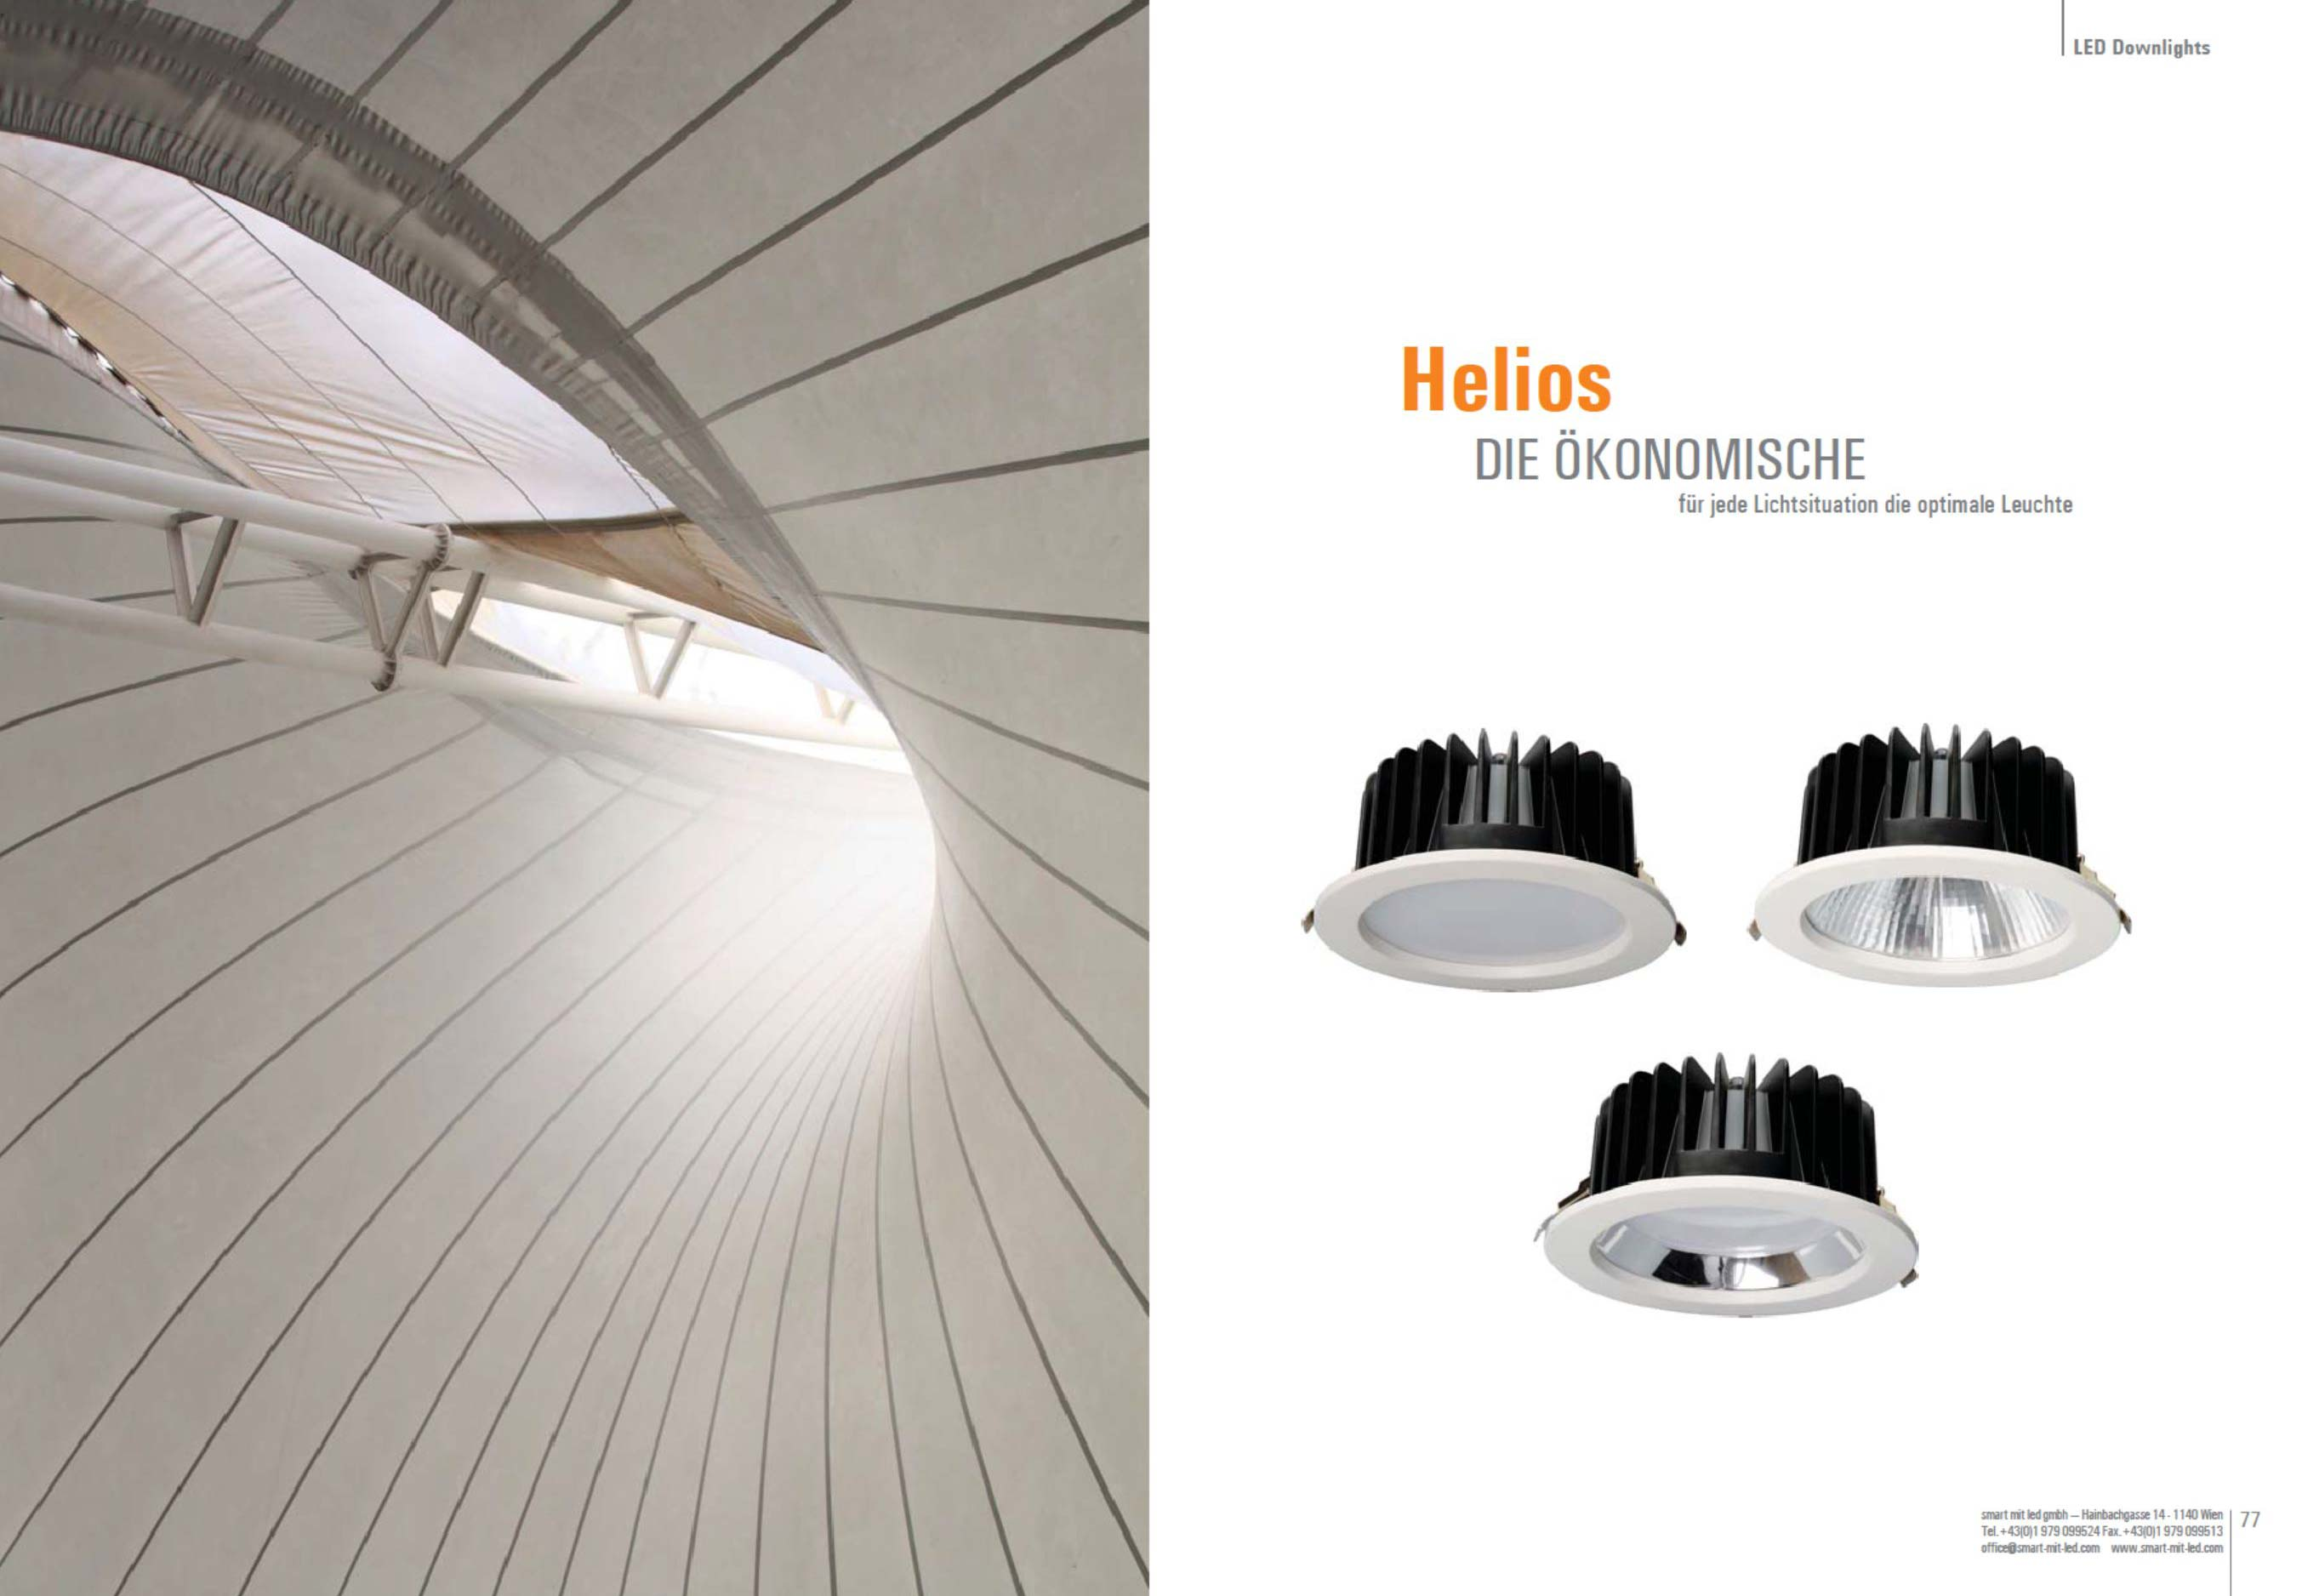 LED Downlight Helios